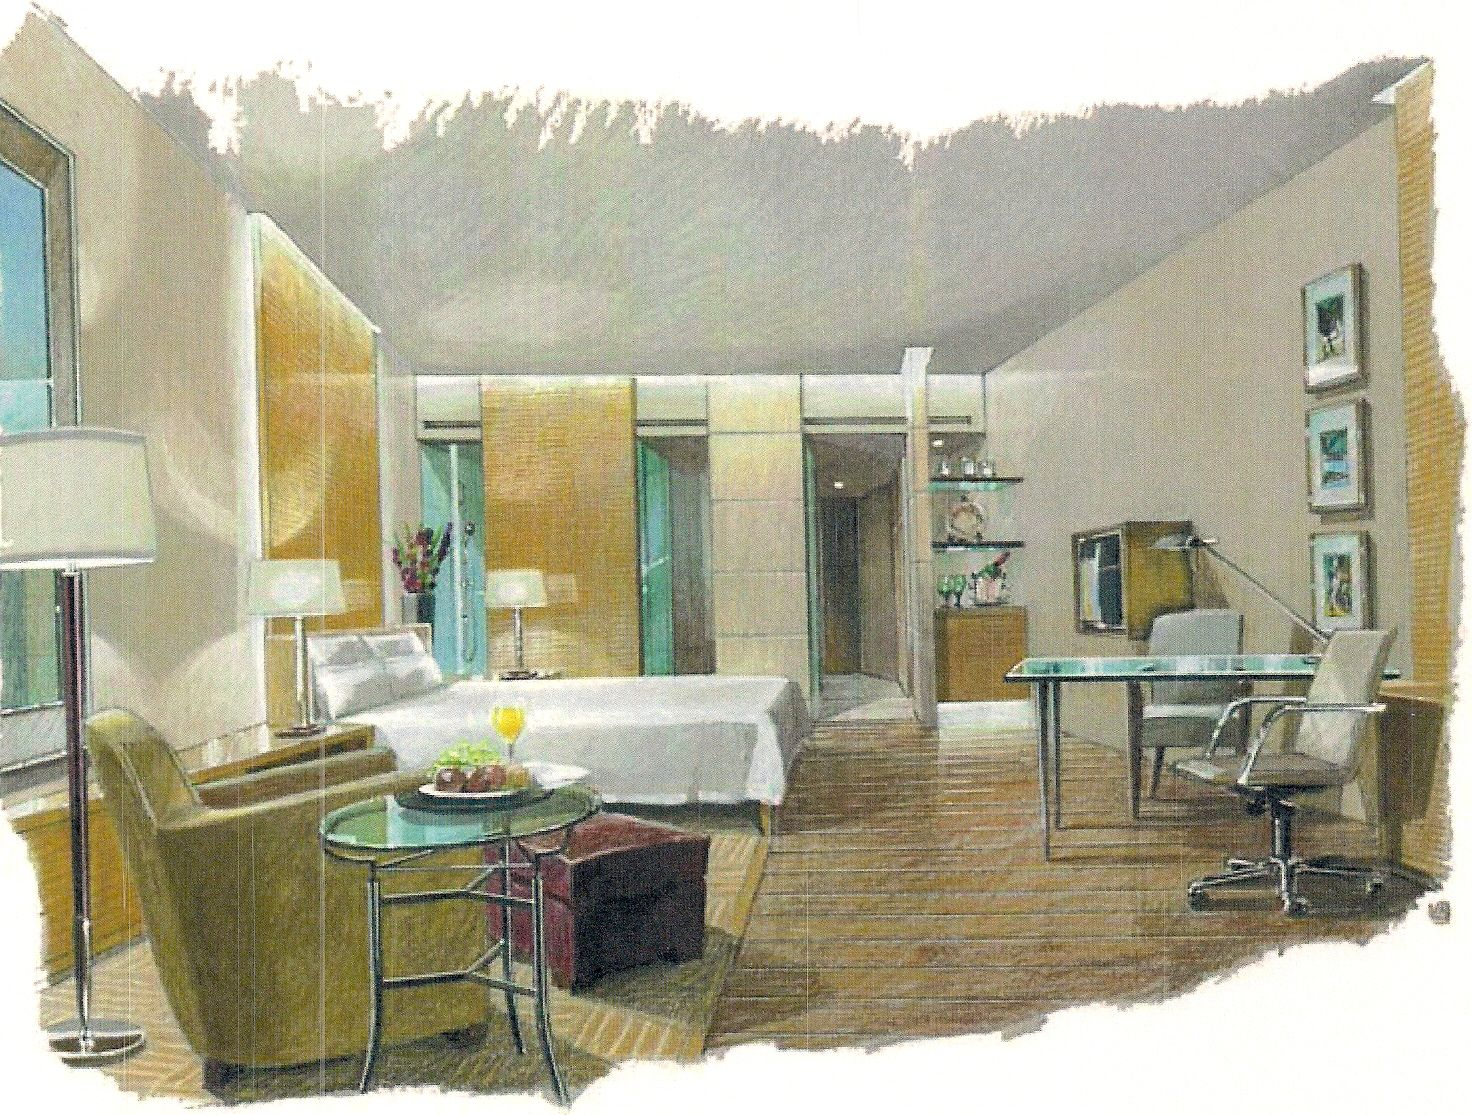 Interior Design Bedroom Sketches interior conceptual sketch. #interiordesign #sketch #bedroom